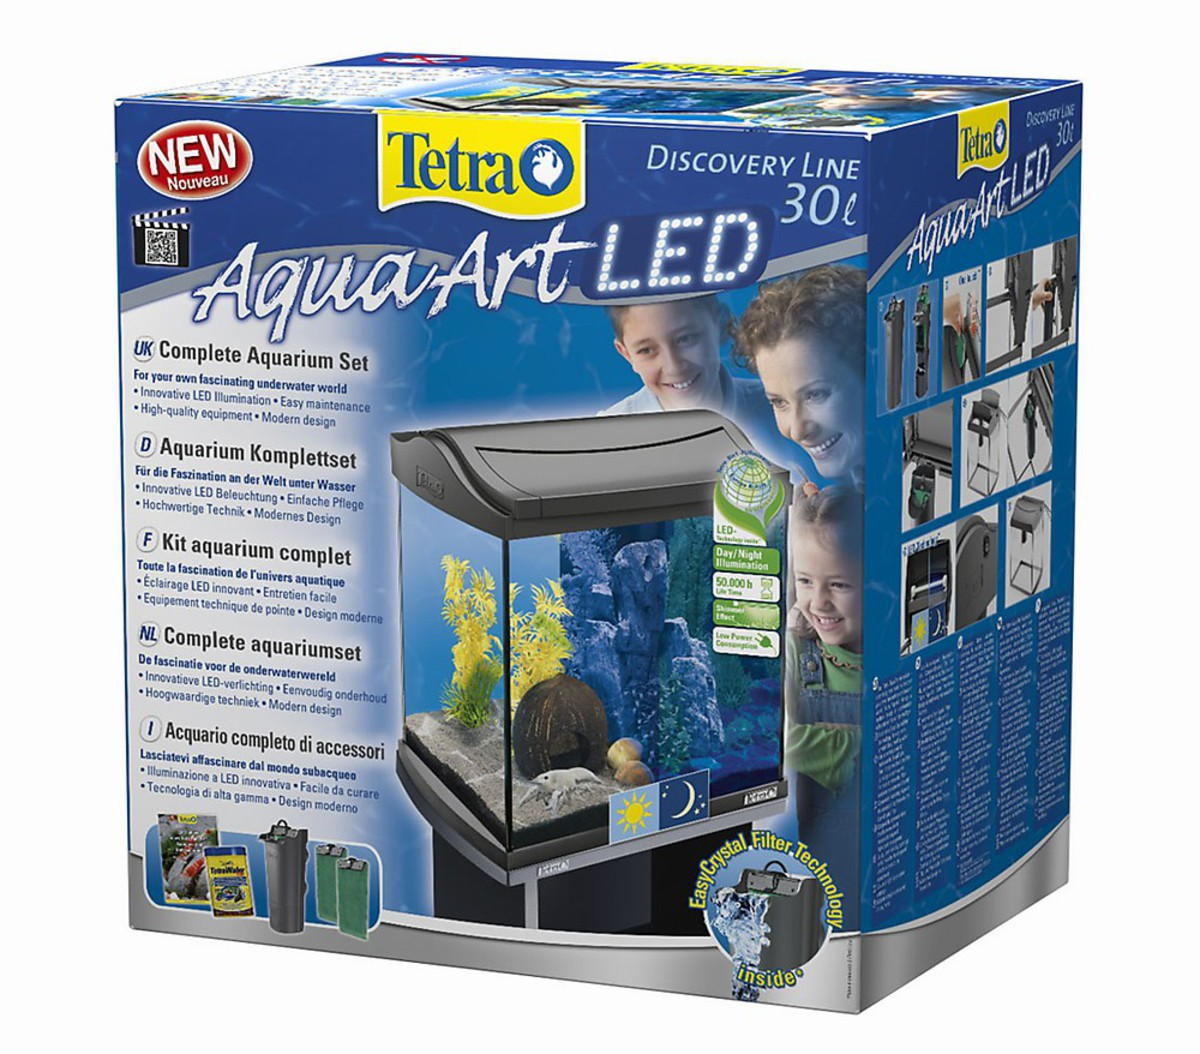 Bild 1 von Tetra AquaArt LED Aquarium-Set, 30 Liter